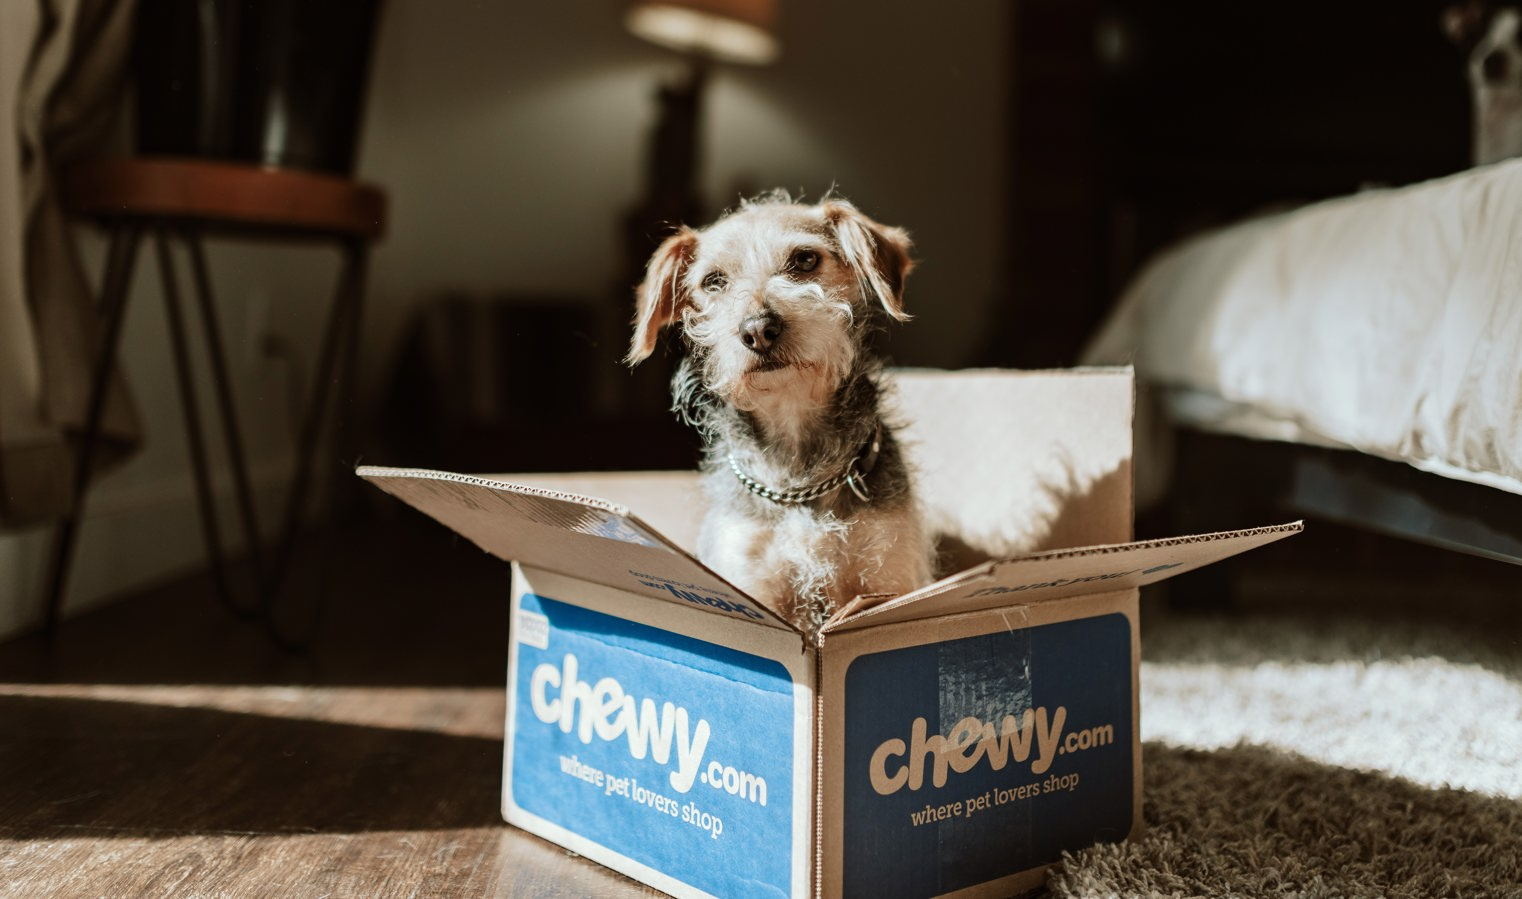 Chewy stock, CHWY stock, stock news and analysis